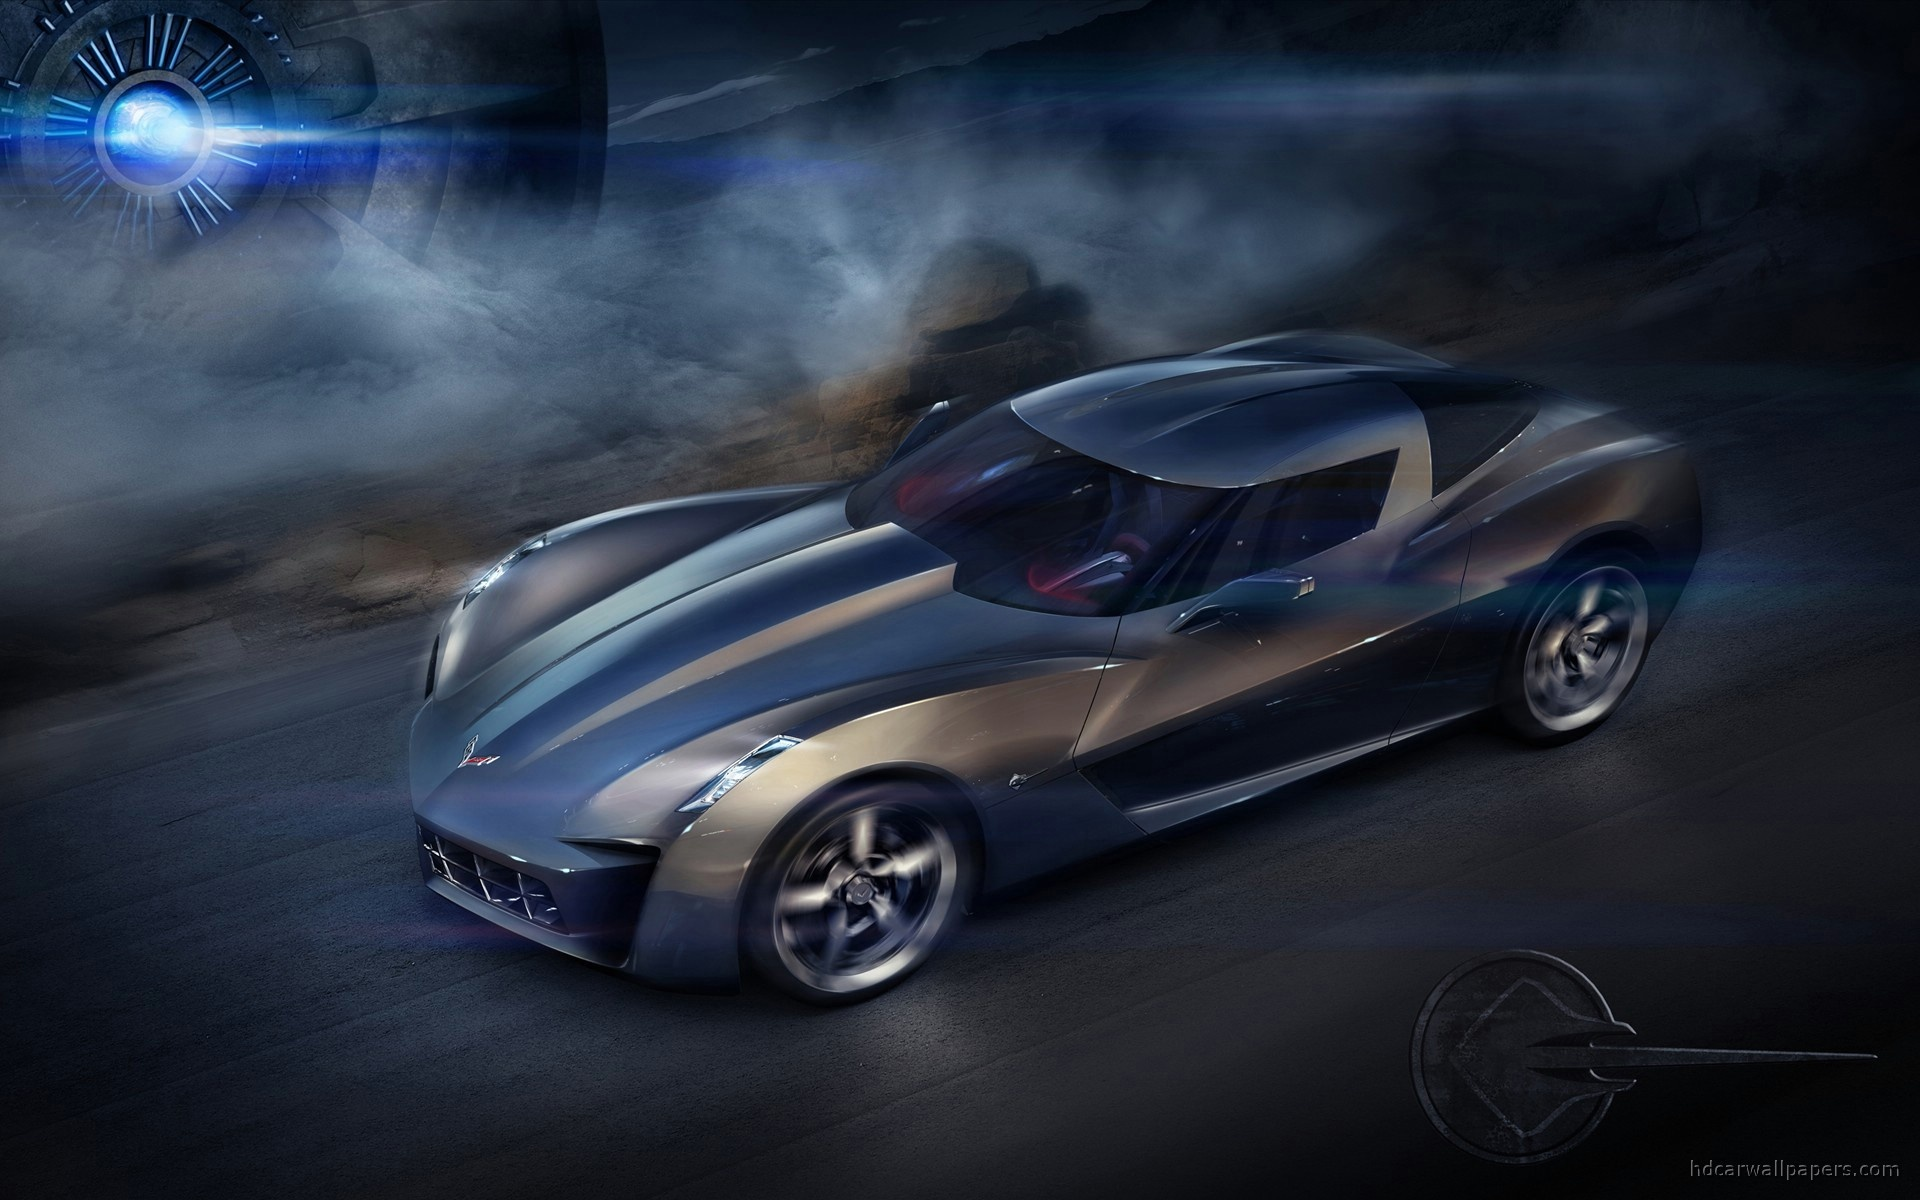 2019 Chevrolet Stingray Concept photo - 2